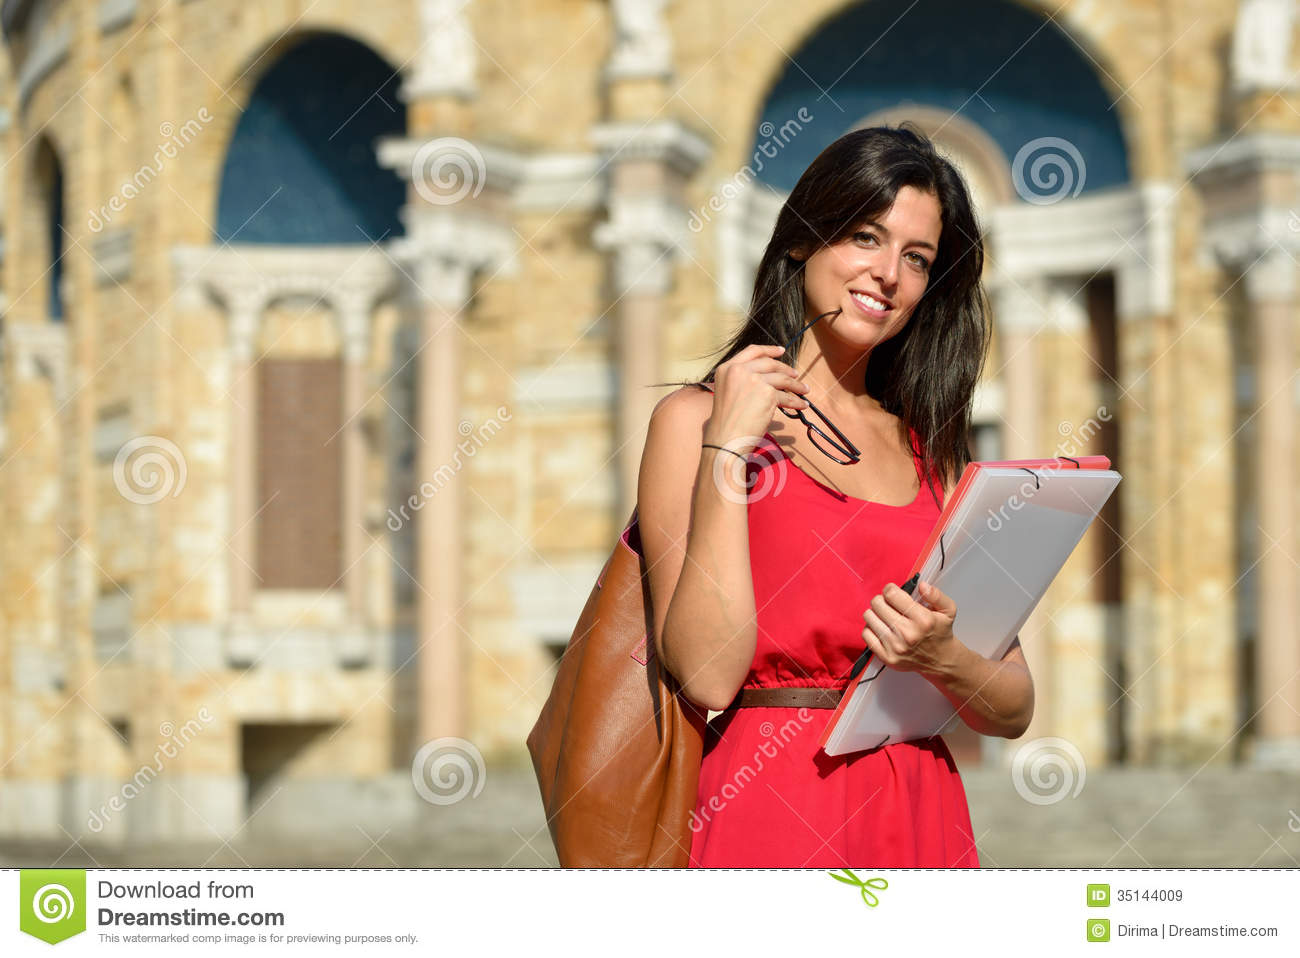 hight resolution of confident female college student